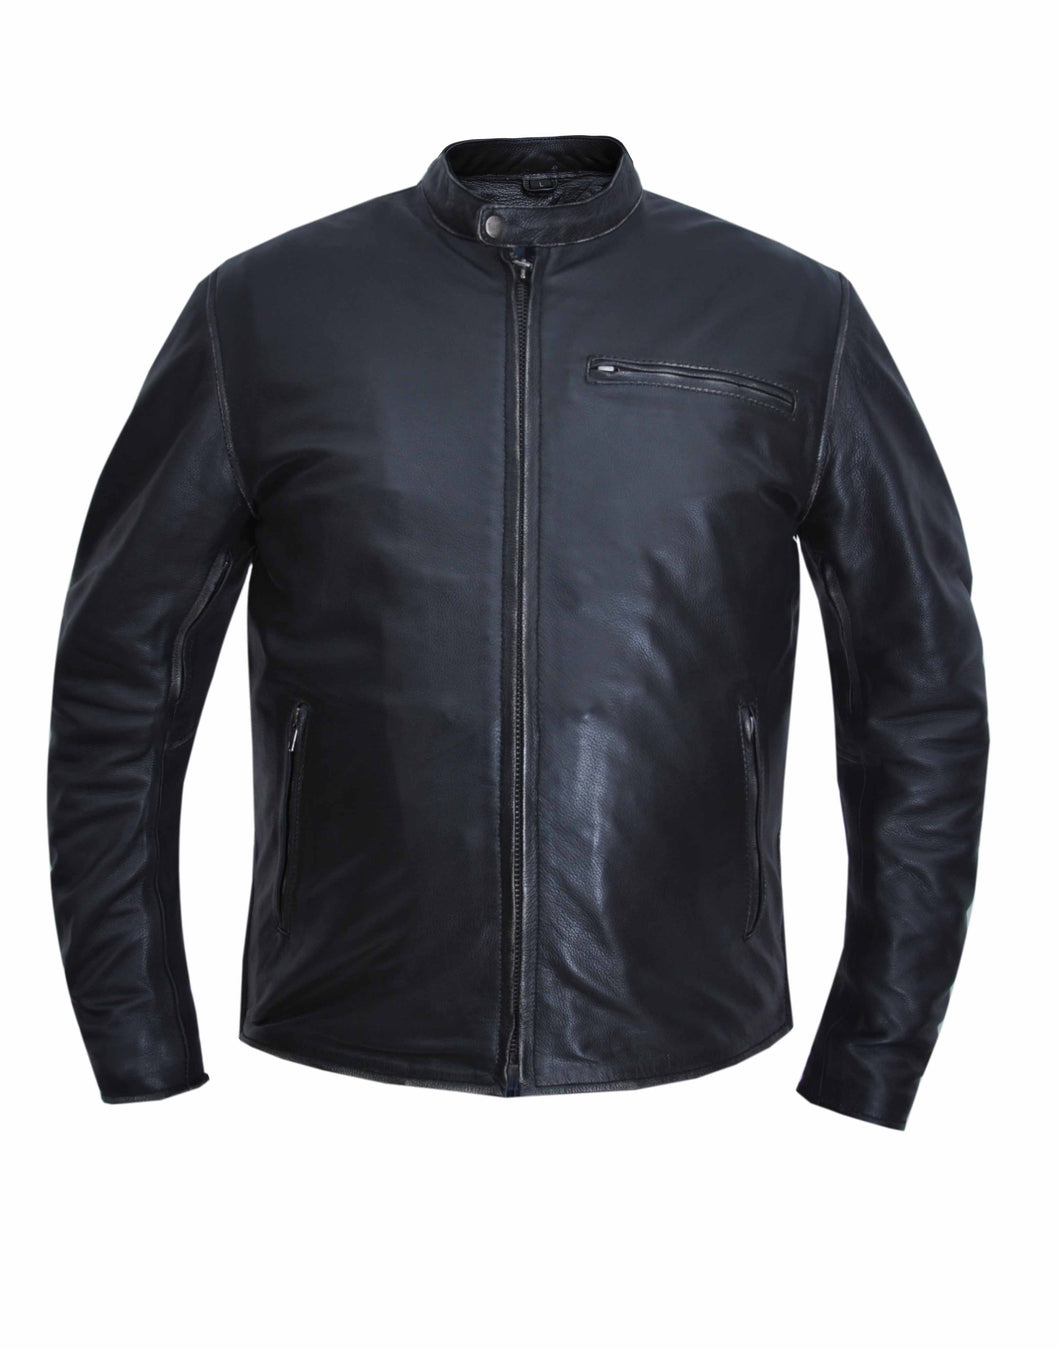 UNIK MEN'S CLASSIC LEATHER MOTORCYCLE SPORTY SCOOTER JACKET